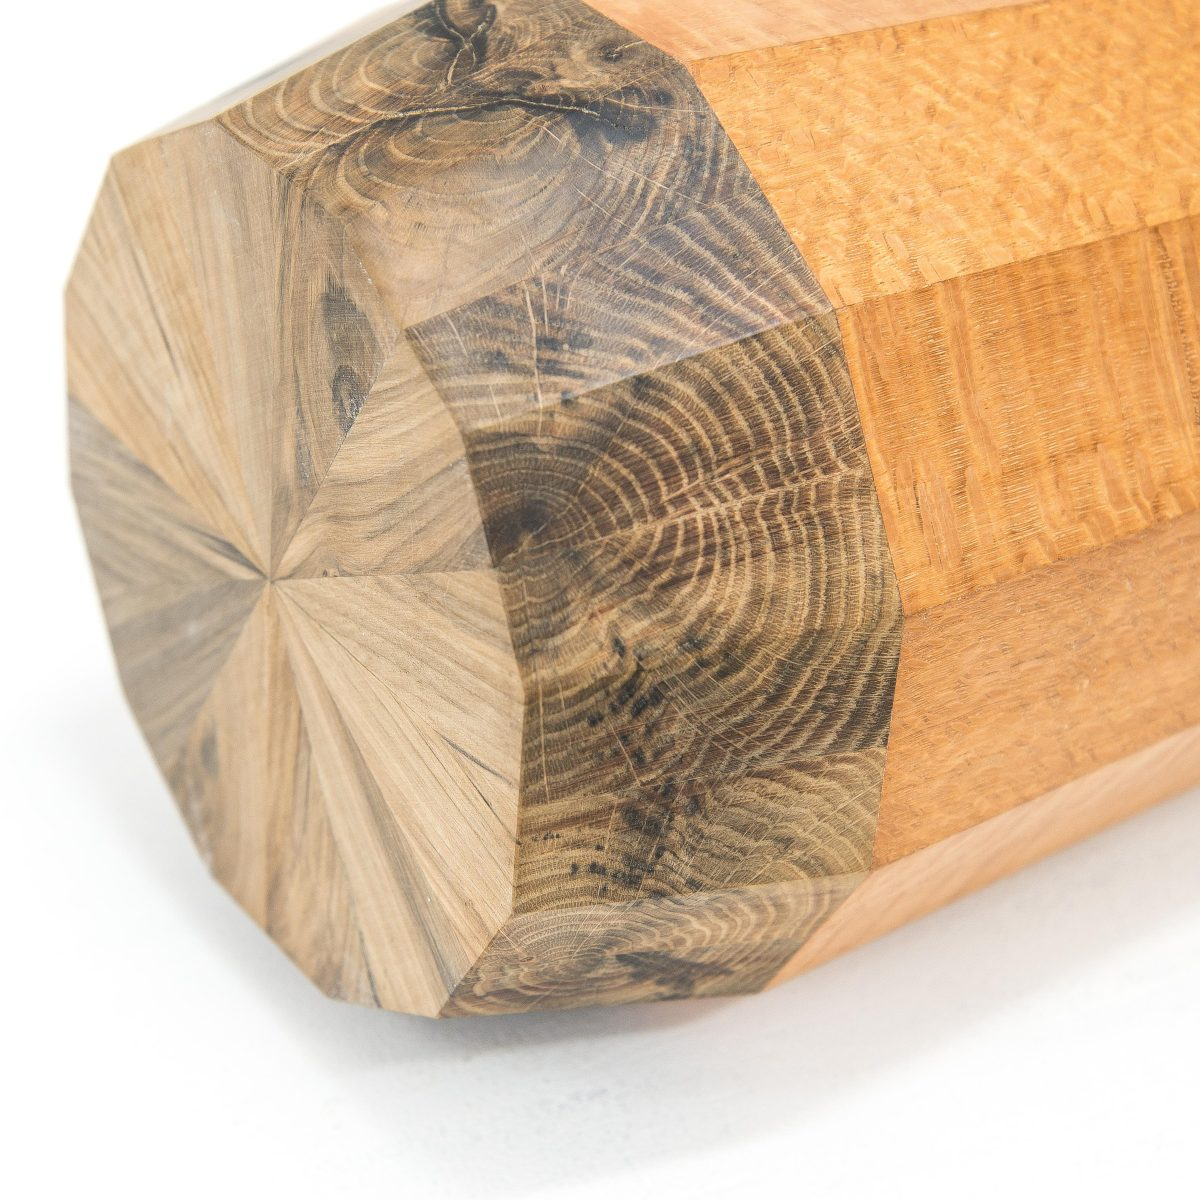 Jan Hendzel Studio kingston black oak-4